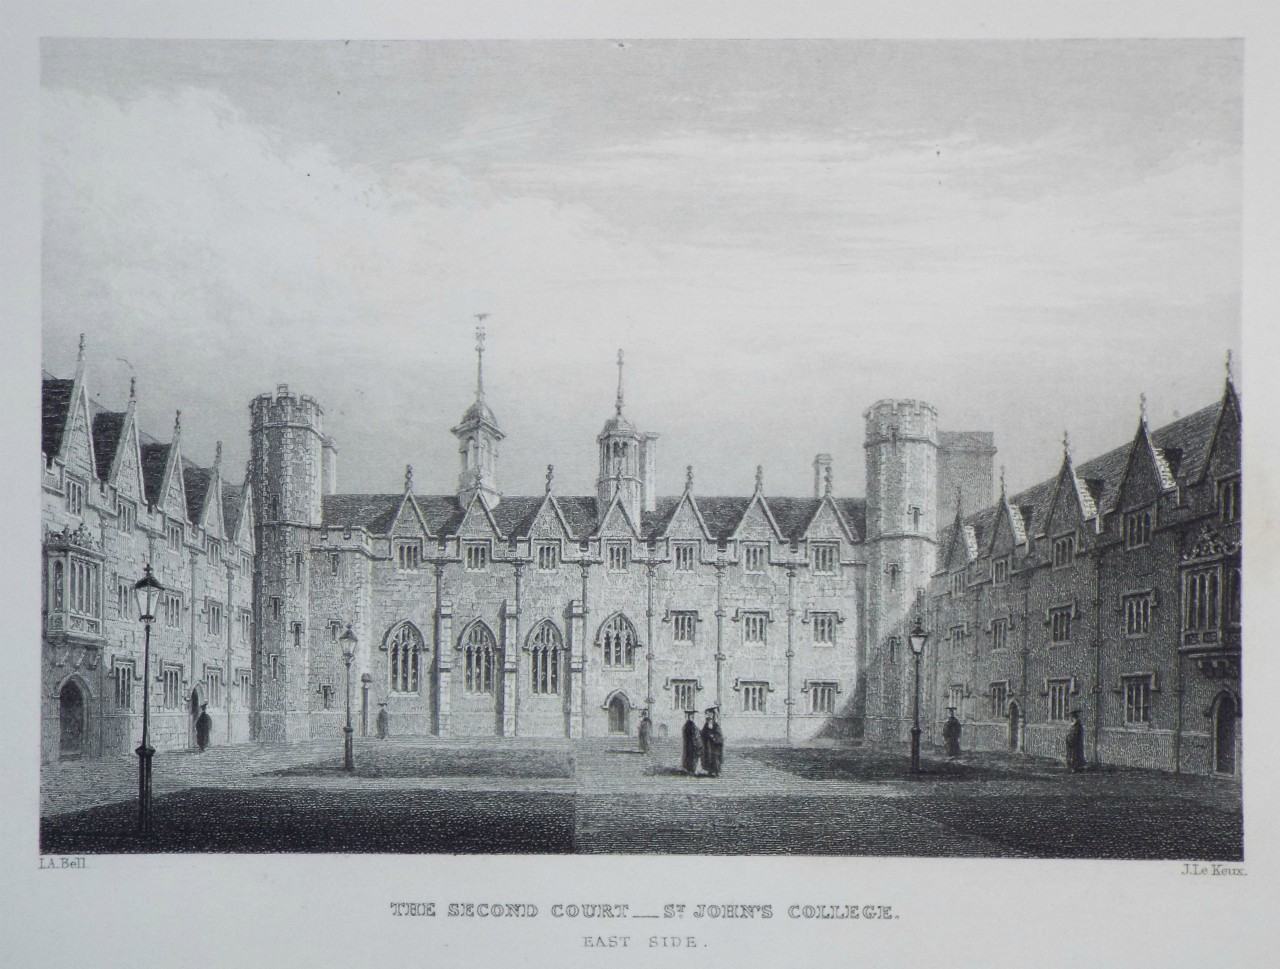 Print - The Second Court - St. John's College. East Side. - Le